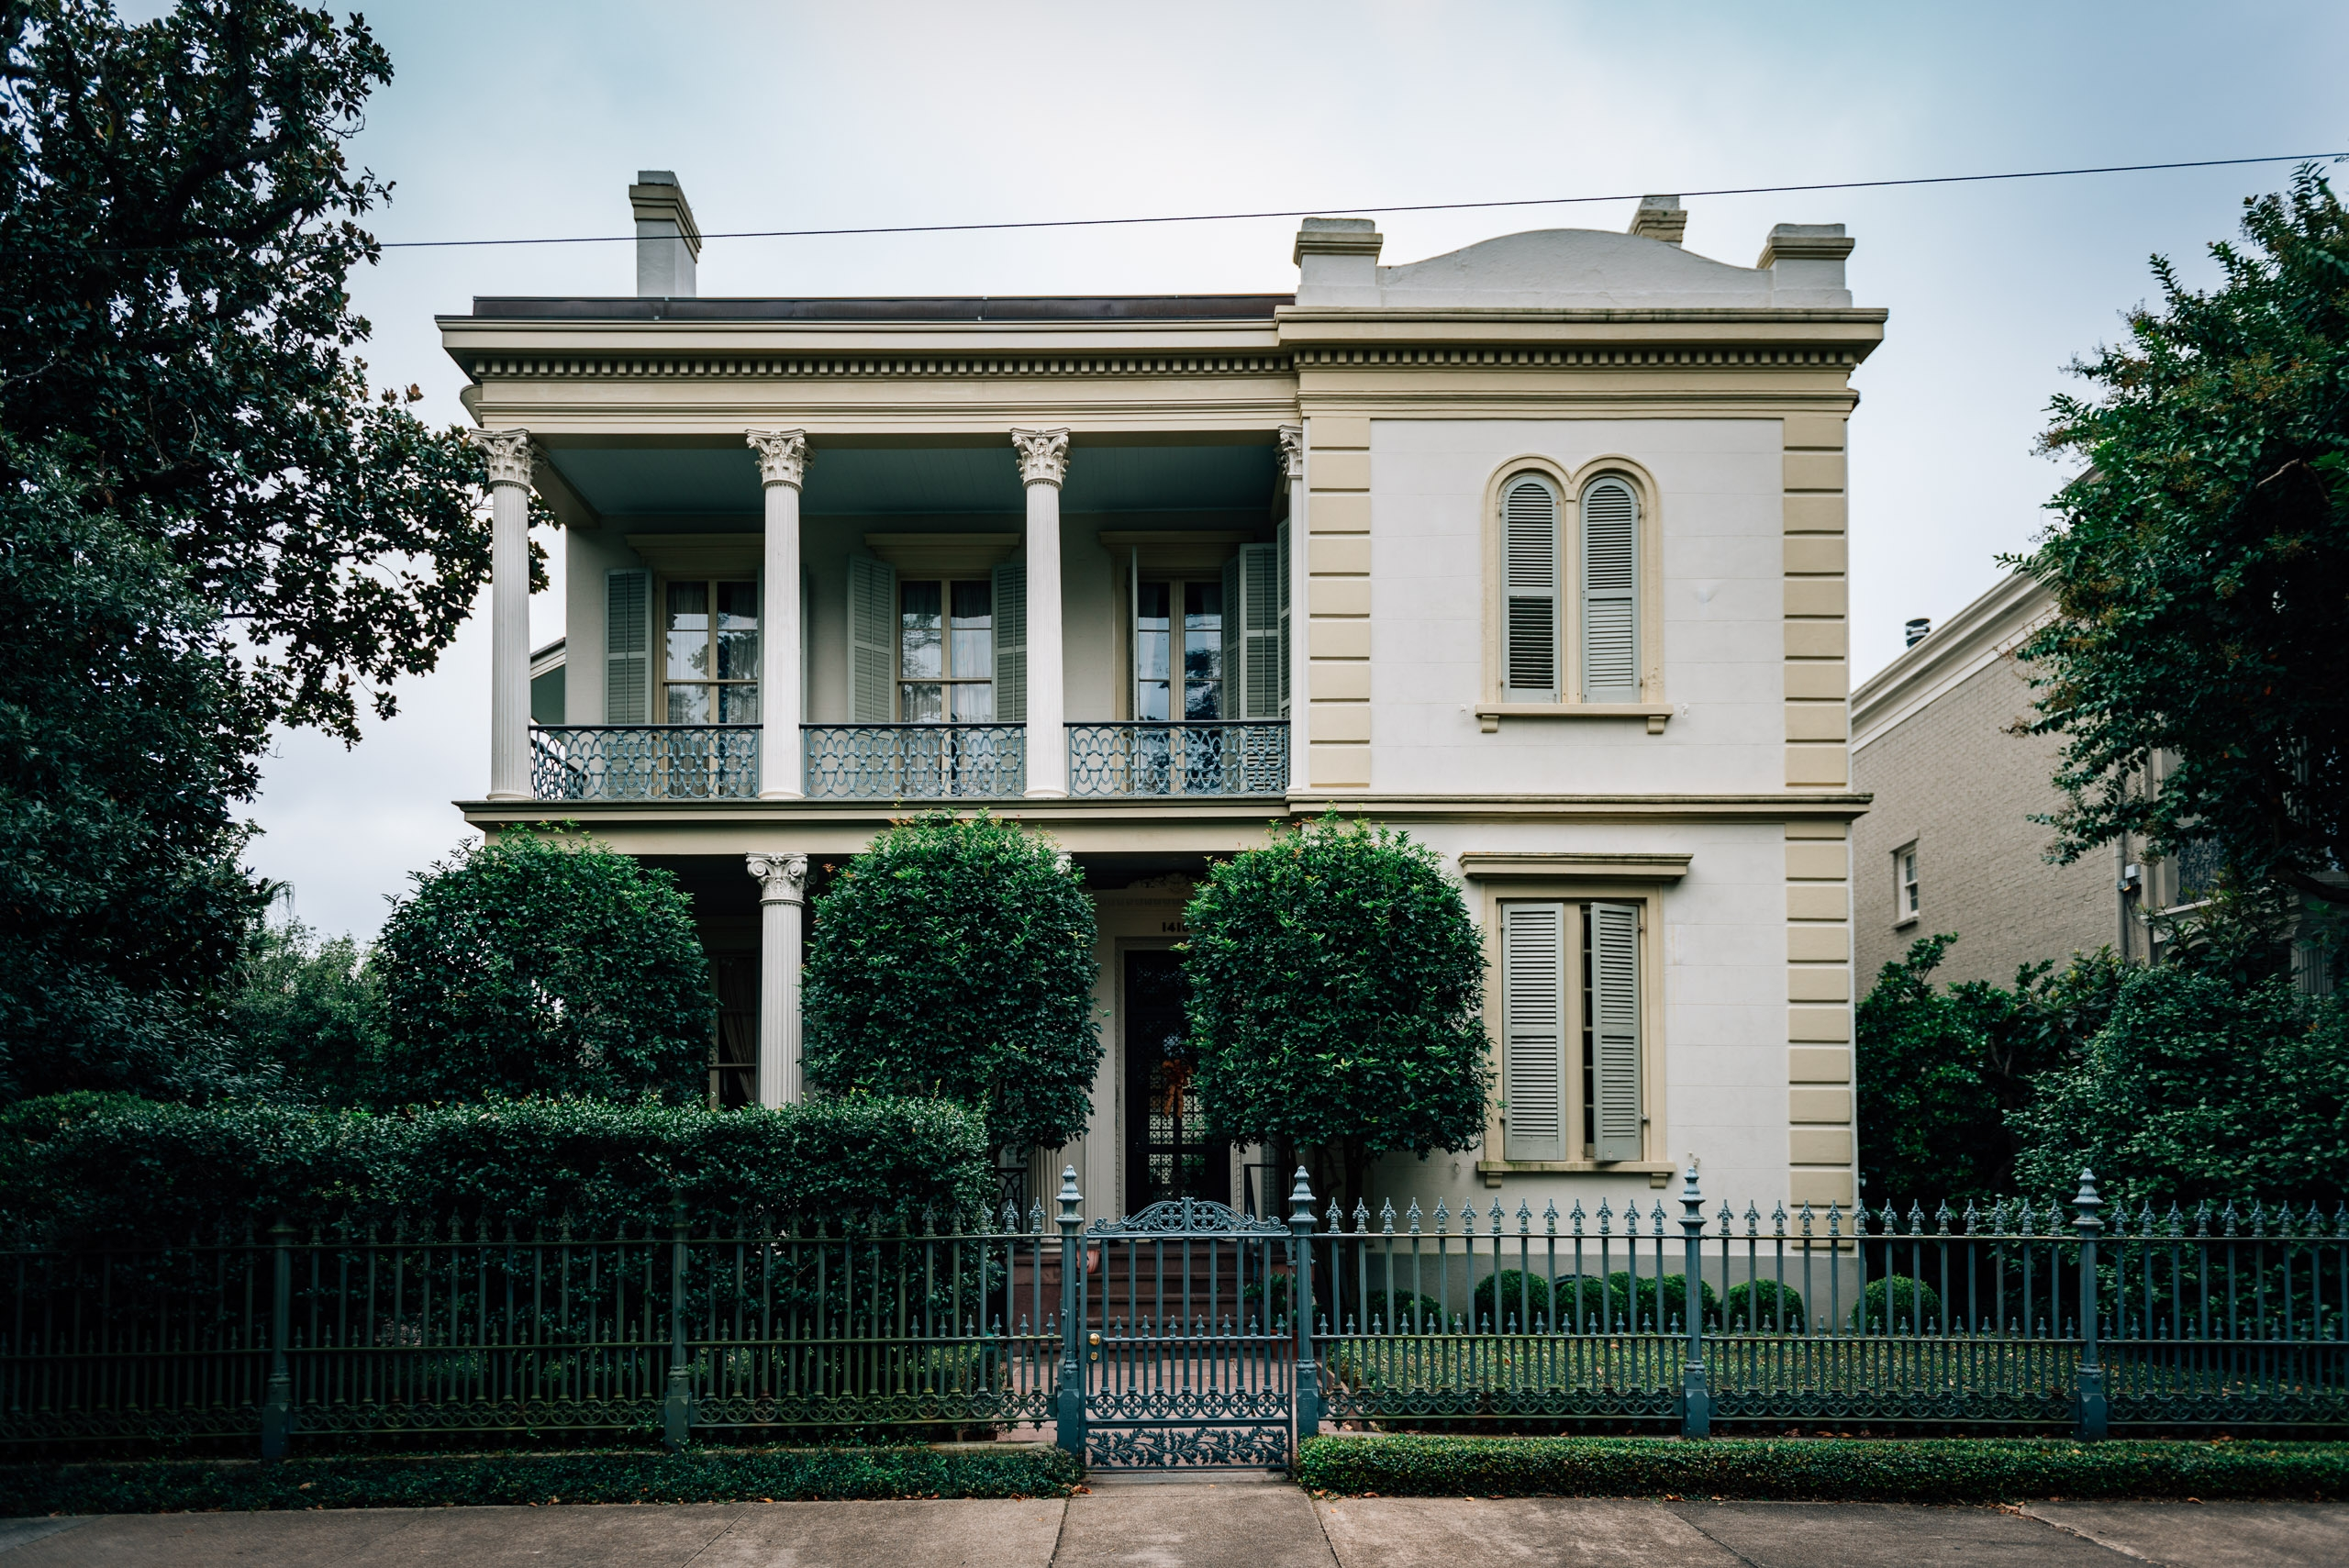 The Haunted Houses of New Orleans 2